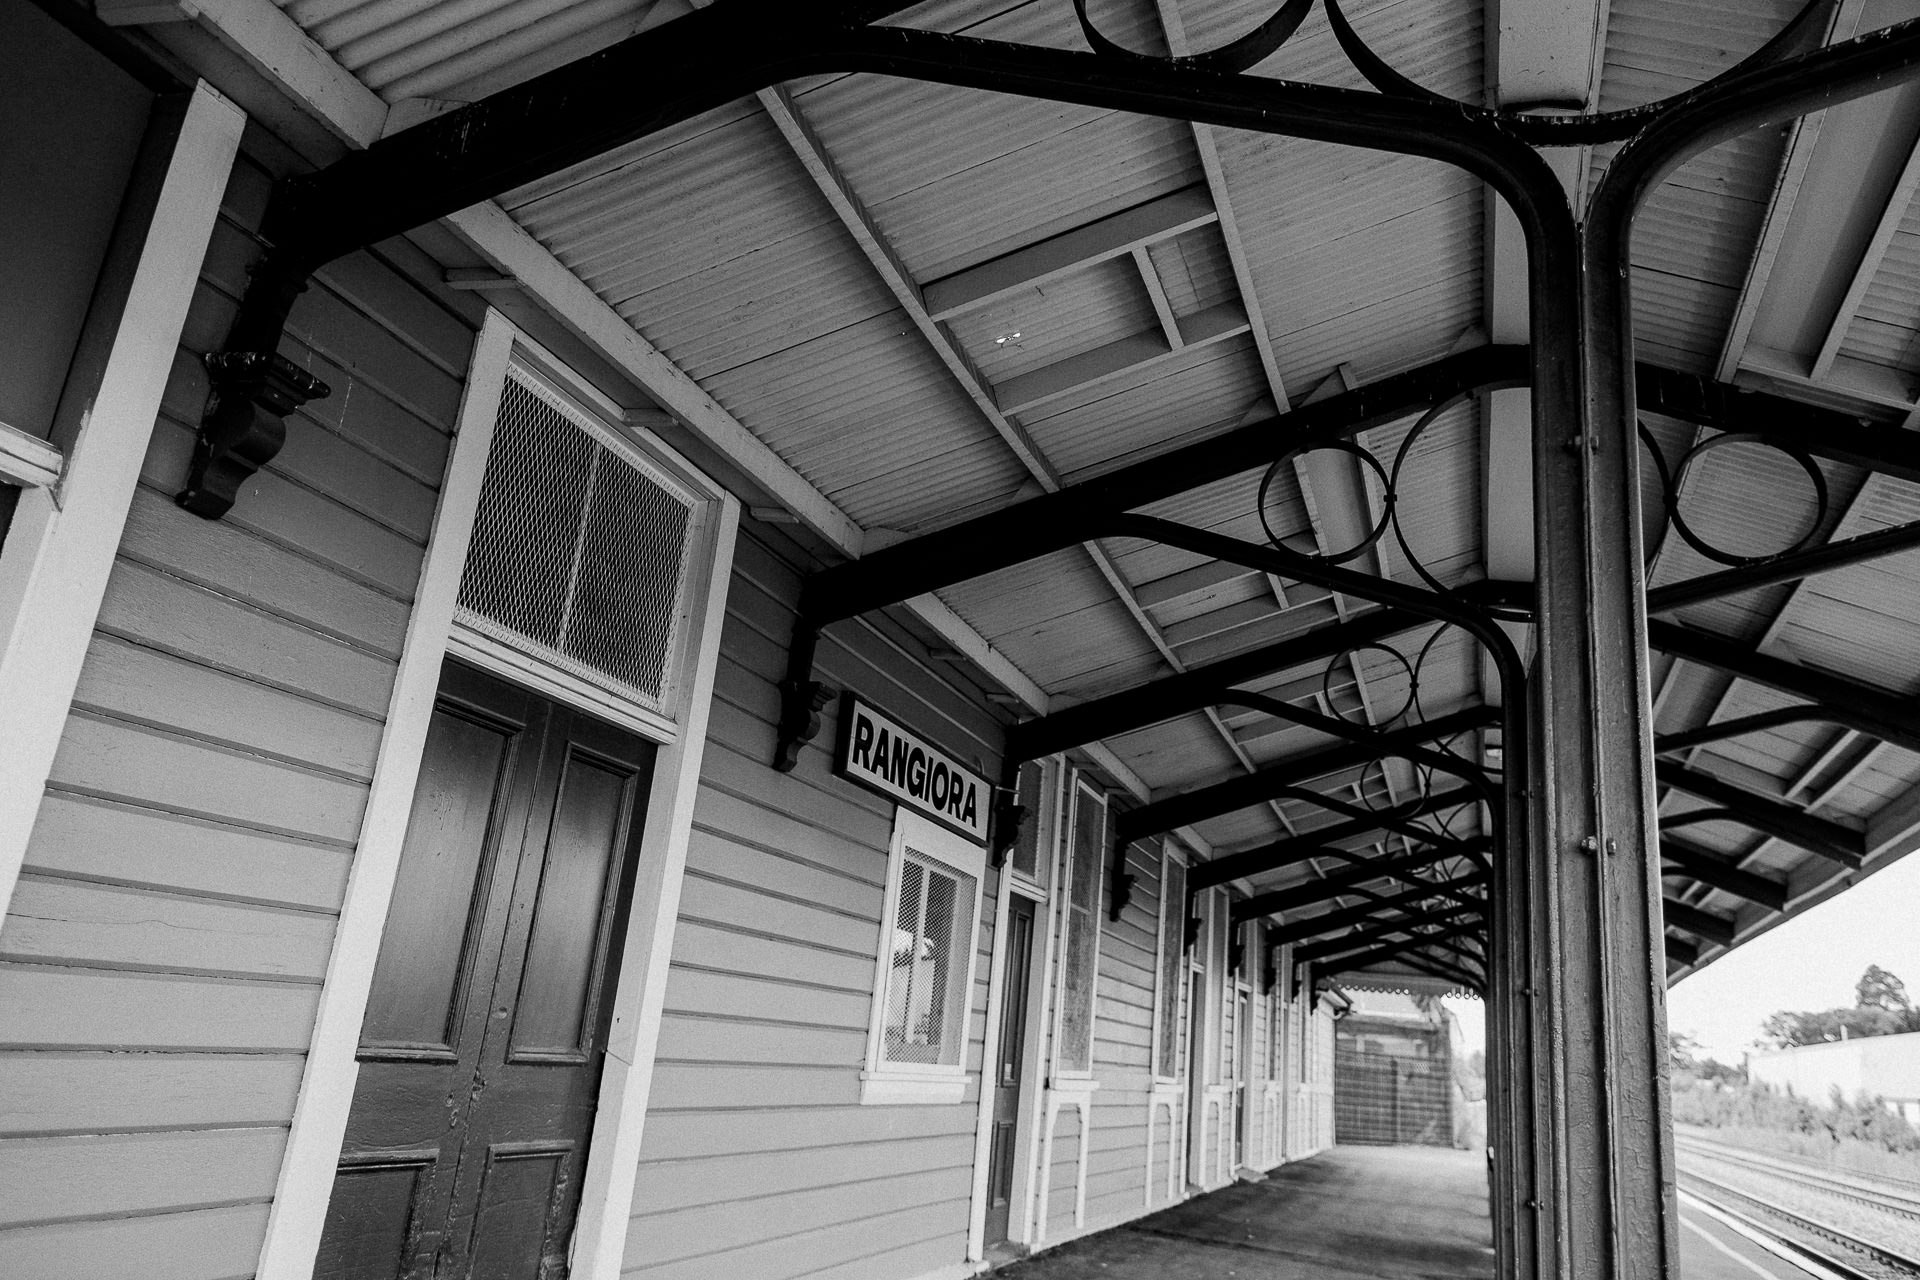 Rangiora train station